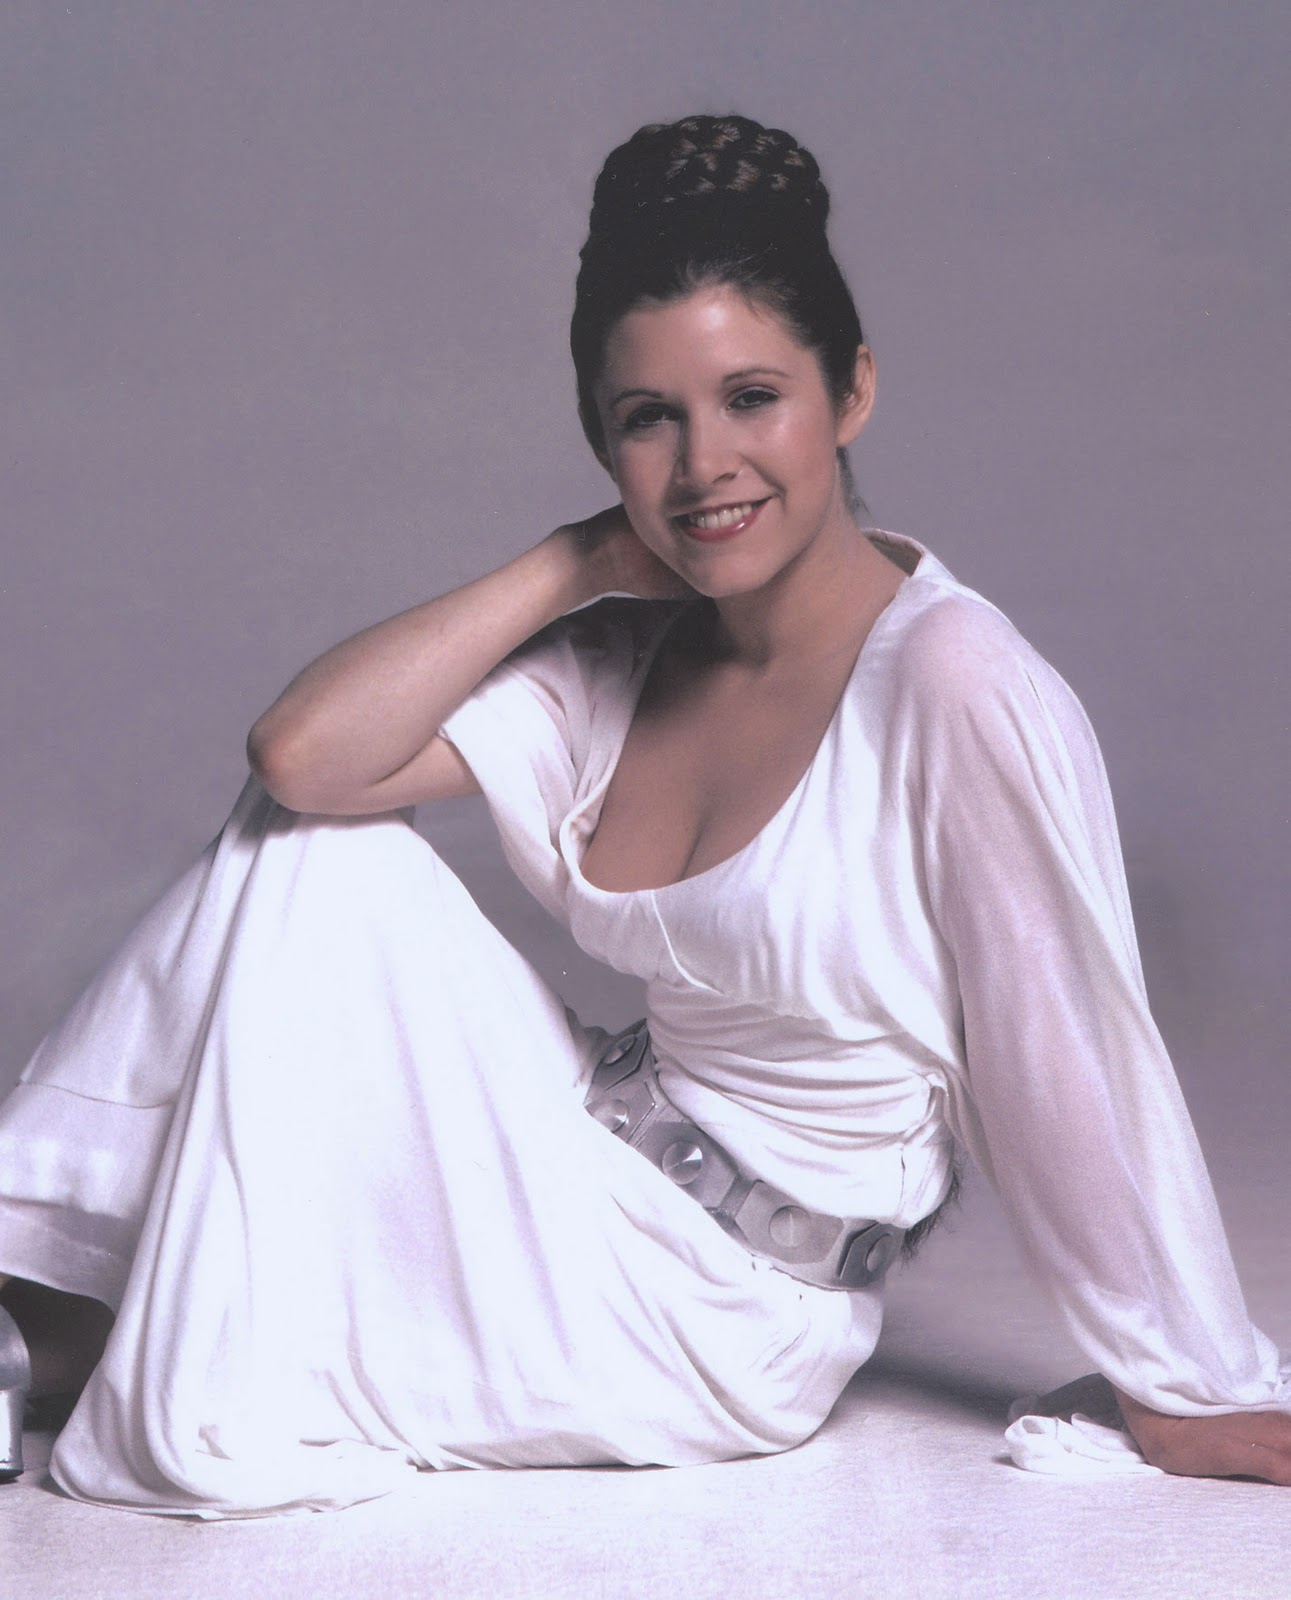 Carrie Fisher As Princess Leia Organa - Nepaetsy-7321